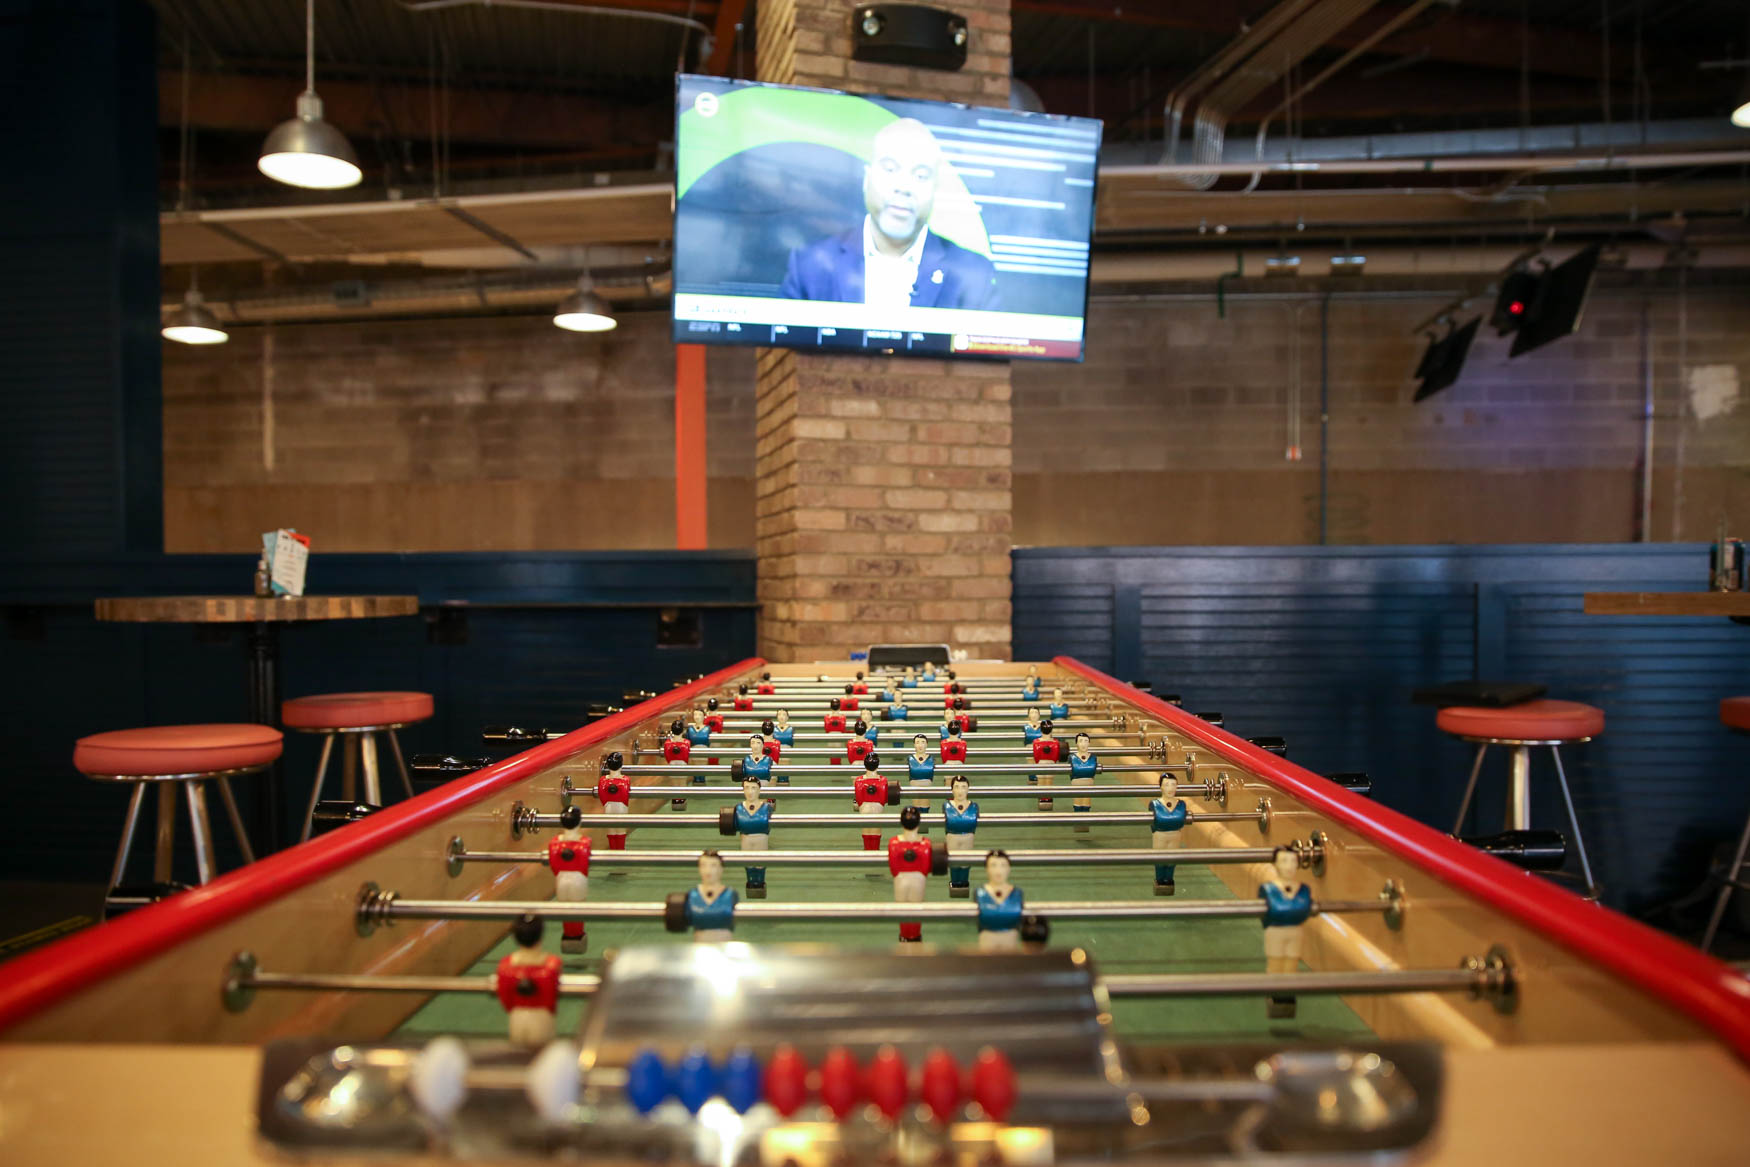 Everyone loves a good game night, but Punch Bowl Social takes it to a whole other level. The three-floor concept in the Ballston neighborhood of Arlington, offers karaoke, bowling, darts and a full arcade, in addition to an attached diner and{ } a quieter lounge area featuring a fireplace. The wide-spanning menu will keep everyone satiated and Punch Bowl Social, as the name implies, is great for groups - especially those which include friends who are willing to share a boozy punch.{ } Punch Bowl Social opens on Saturday. The opening party has a $20 cover charge, but it includes food and drink. (Amanda Andrade-Rhoades/DC Refined)